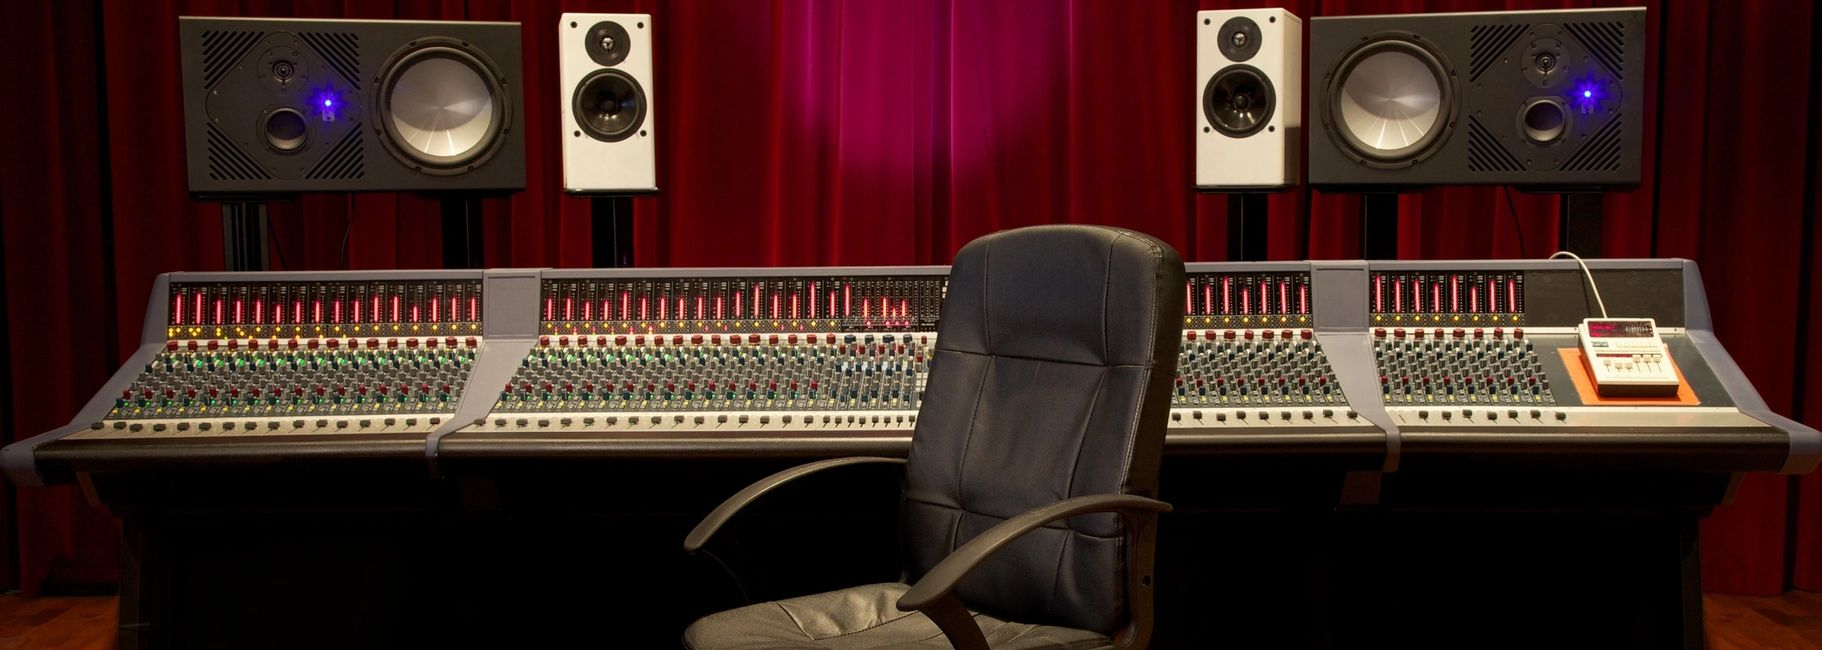 Voiceover recording services - Voiceover, Voice-Over, Voice Dubbing